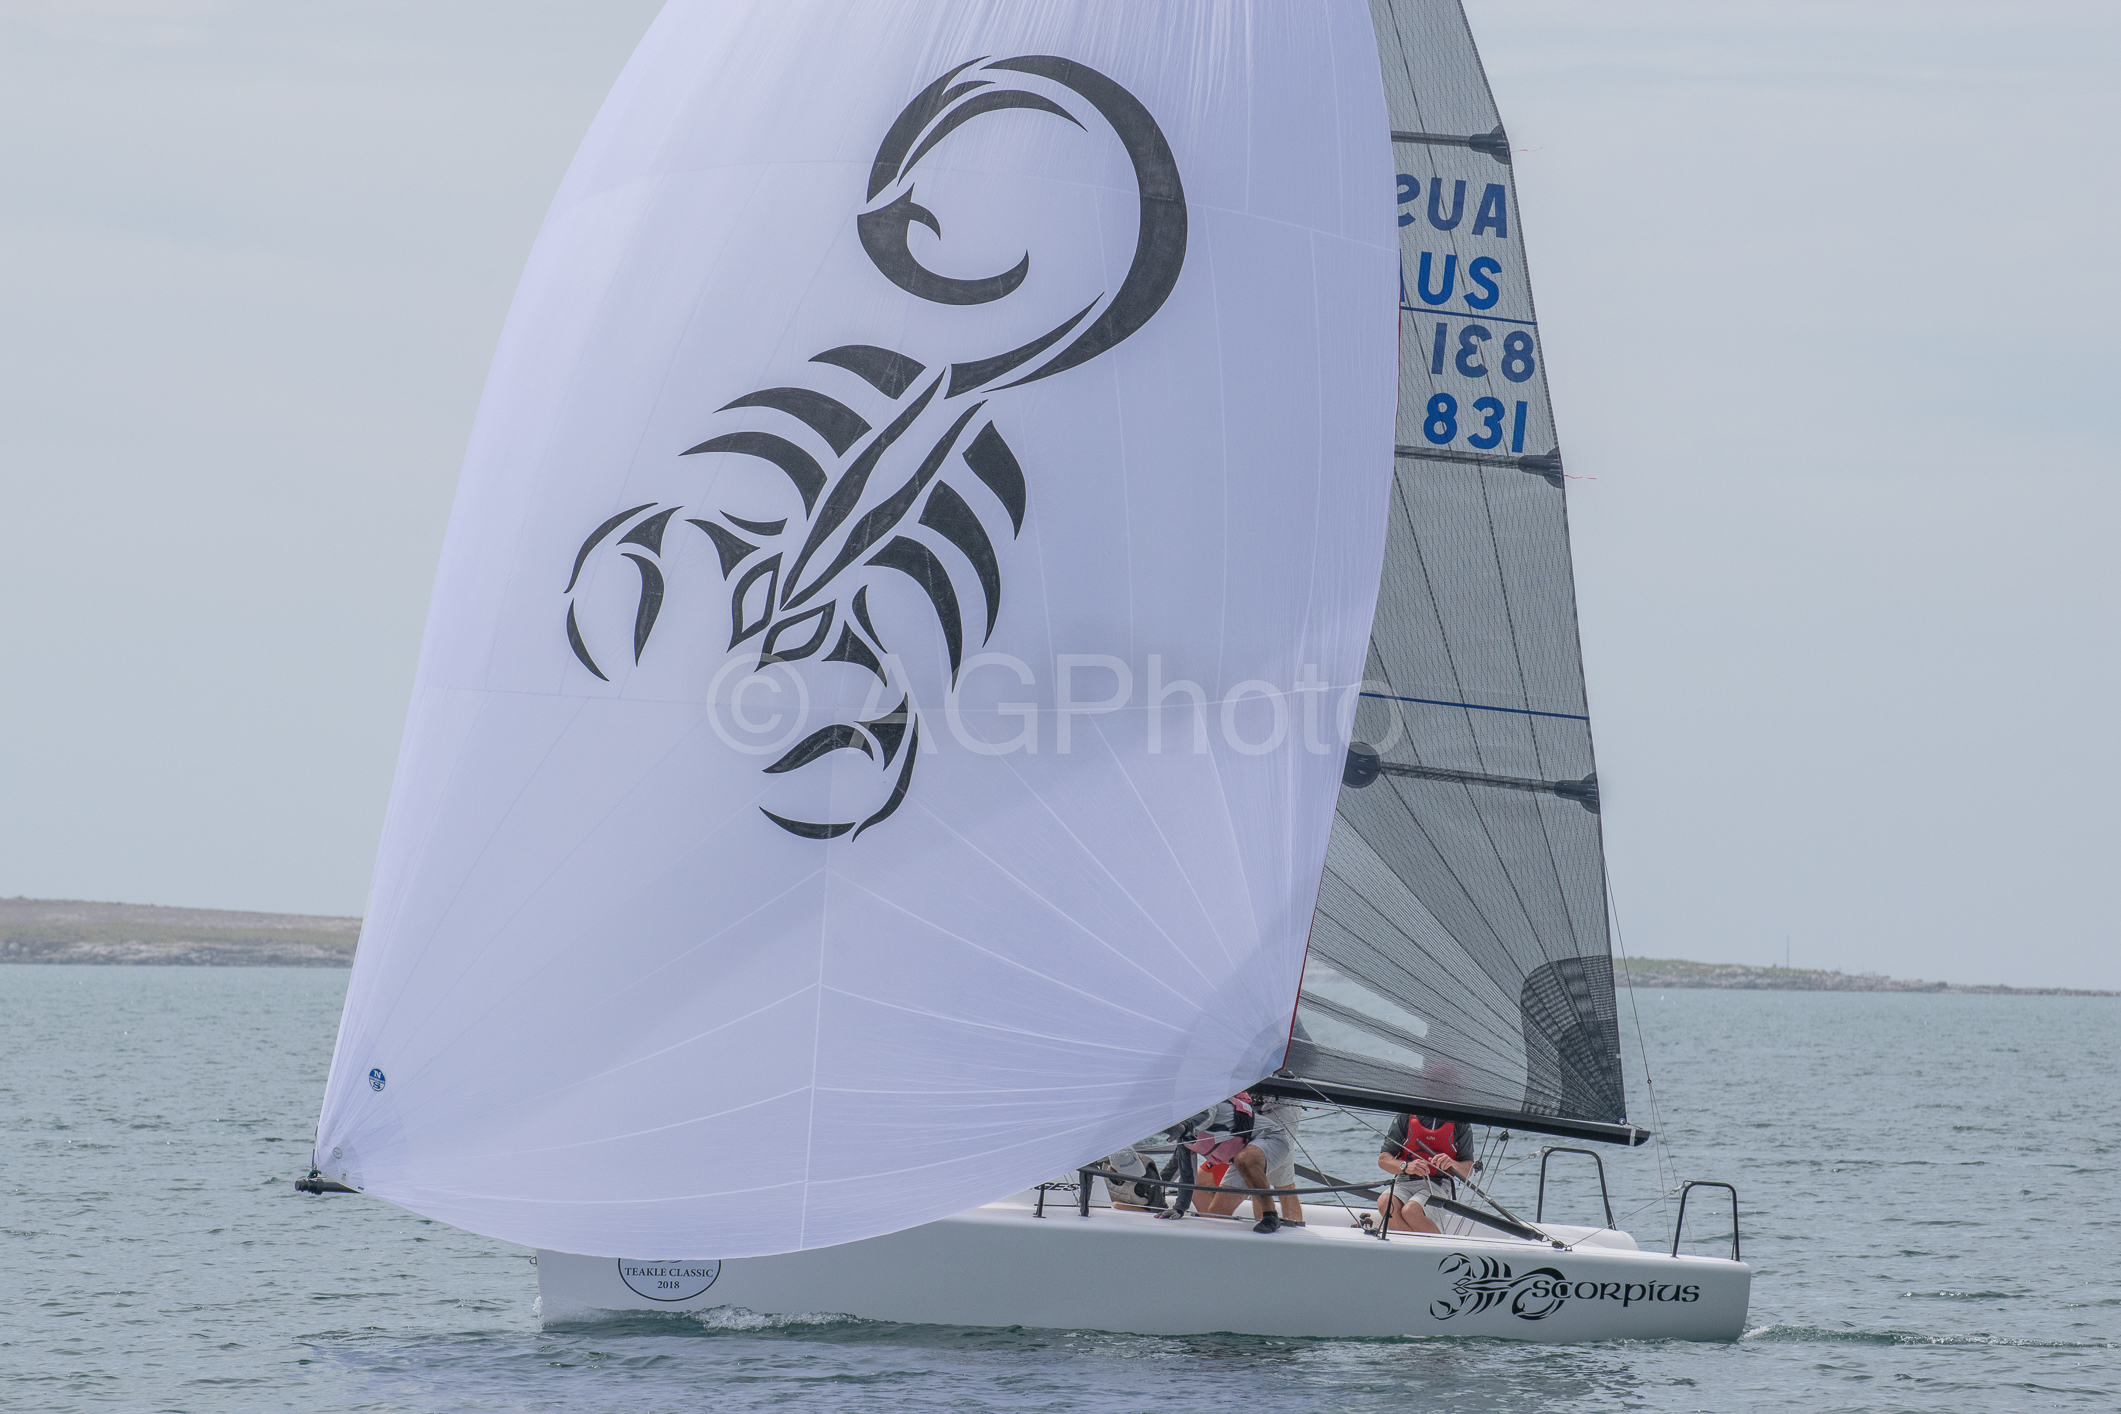 Scorpius was the boat of the day with two wins and a second. Photo Harry Fisher.